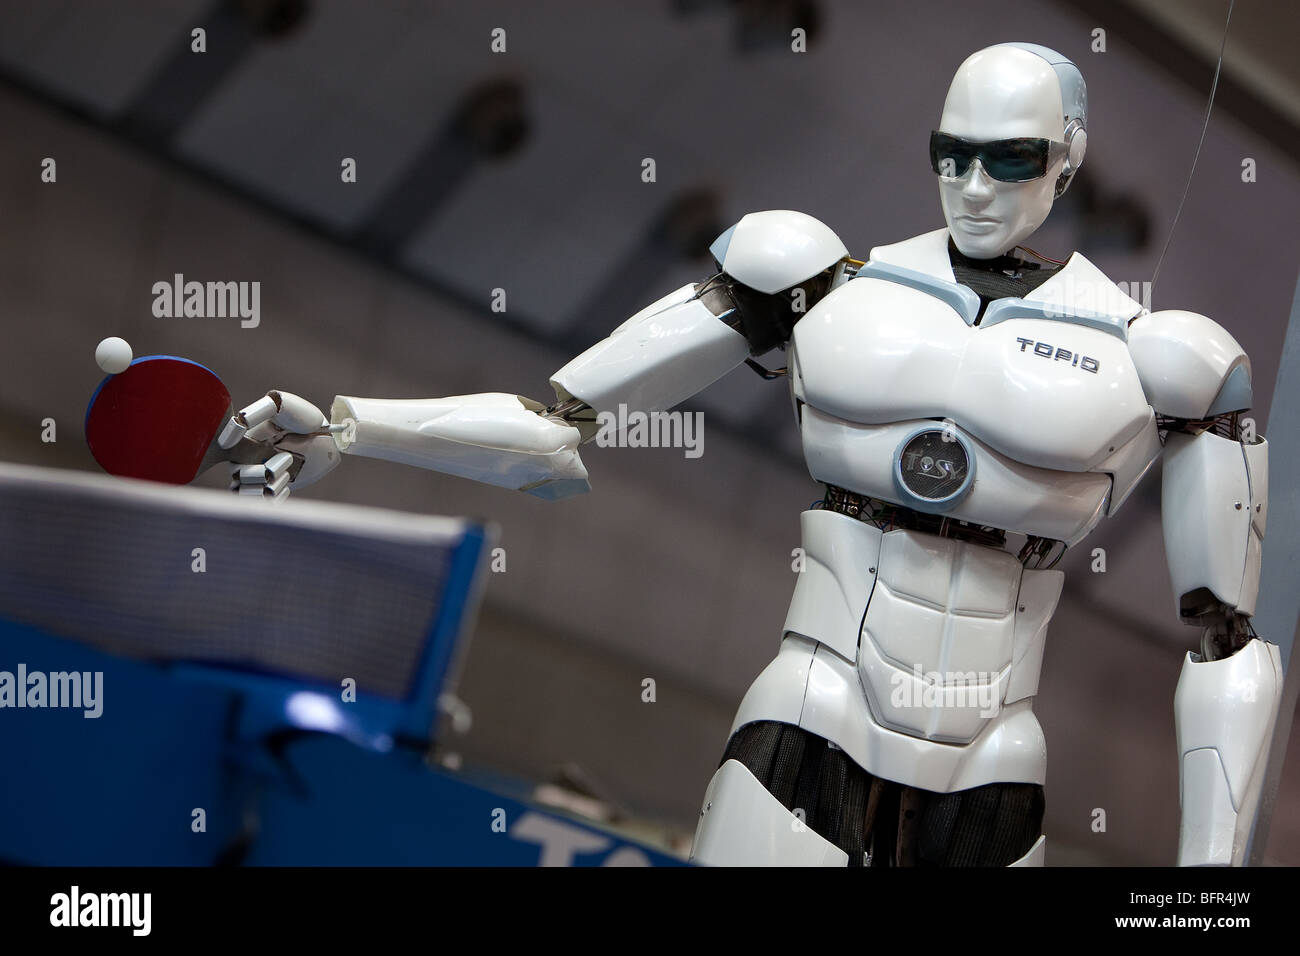 'TOPIO' a ping pong playing robot, produced by Vietnamese company Tosy, on display at the International Robot Exhibition, Stock Photo